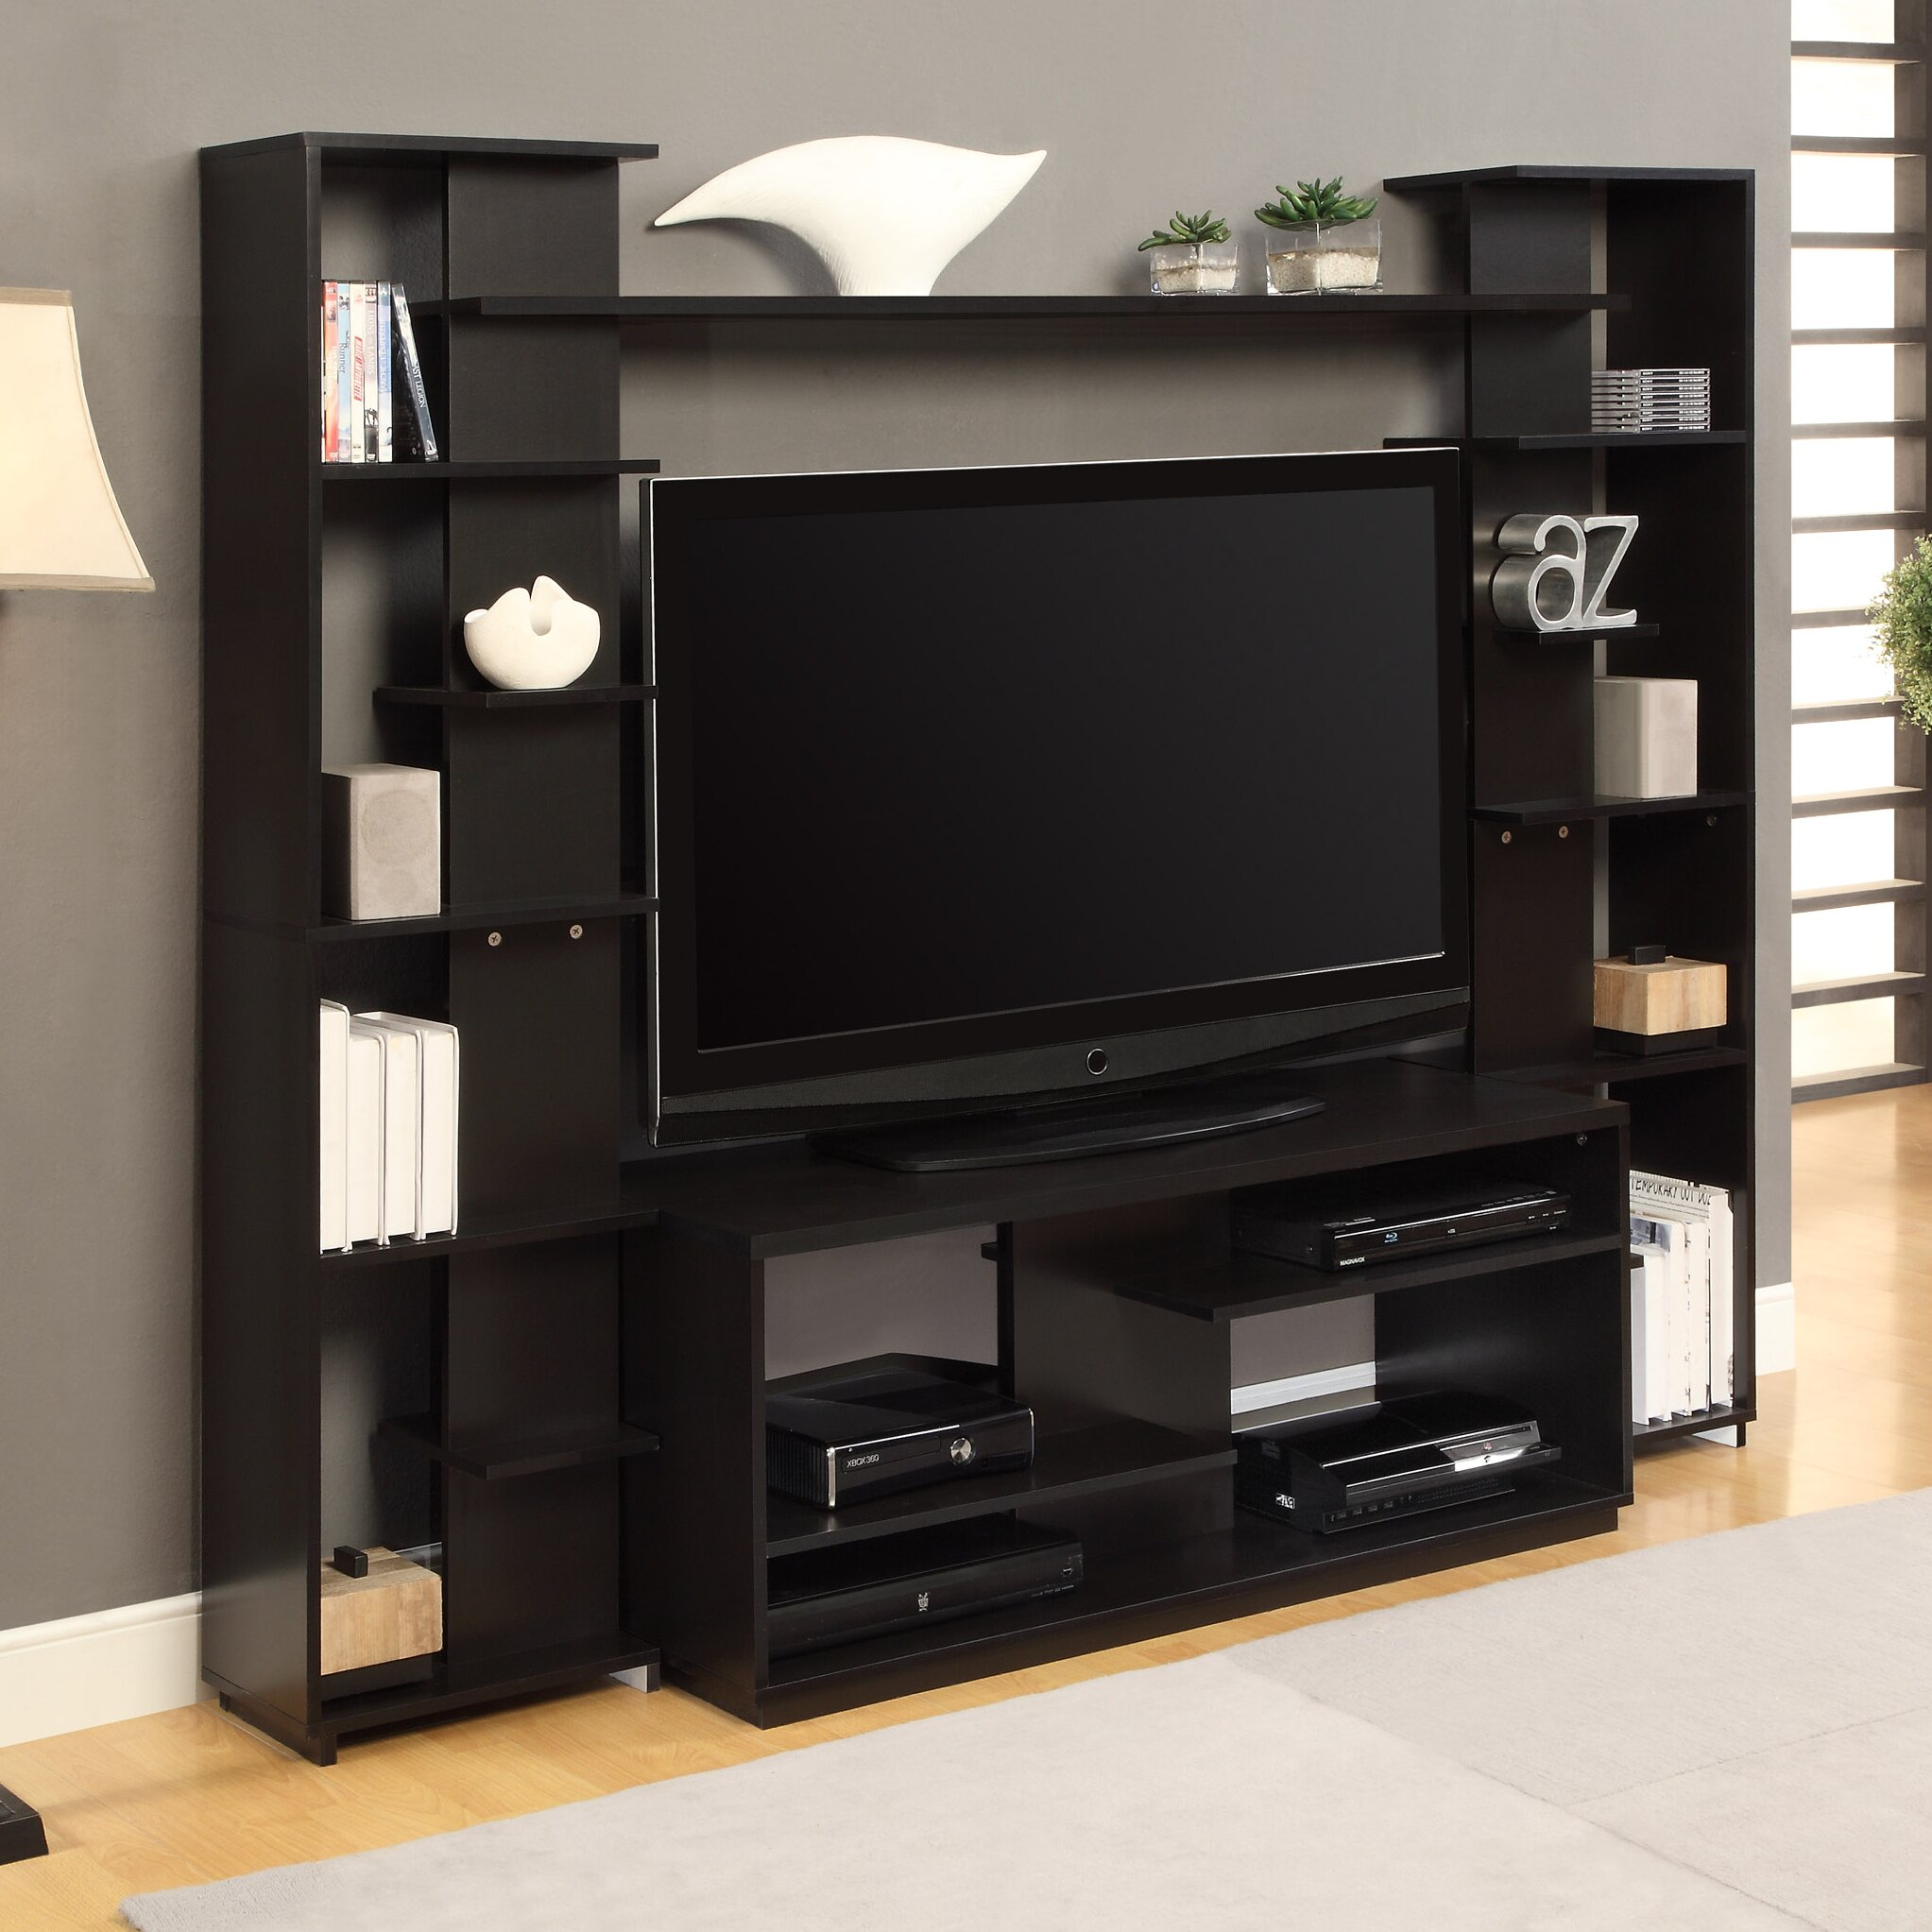 DCOR Design Entertainment Center & Reviews